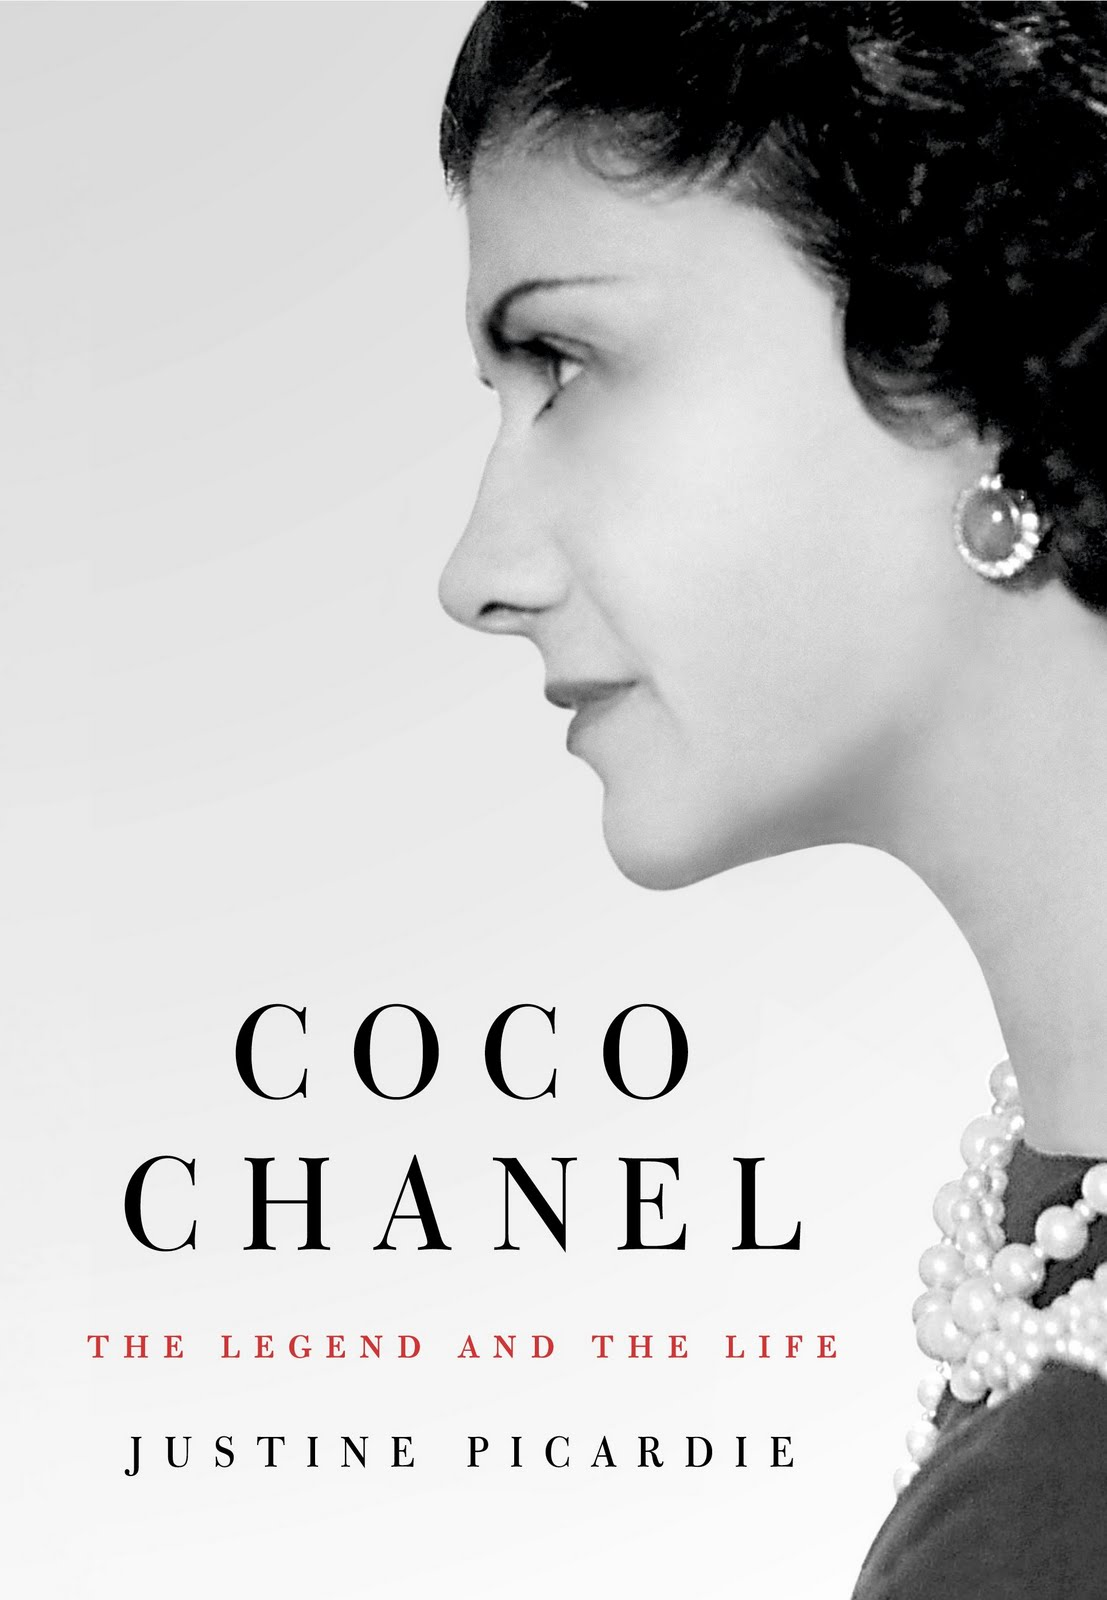 an introduction to the life and times of coco chanel Chanel's biography has been written many times, so the outline of her life– including her collaborationist behavior during world war ii–is well known garelick's goal, stated in the book's introduction, was to provide an objective account of the designer's life, free of encomium and uncolored by the.